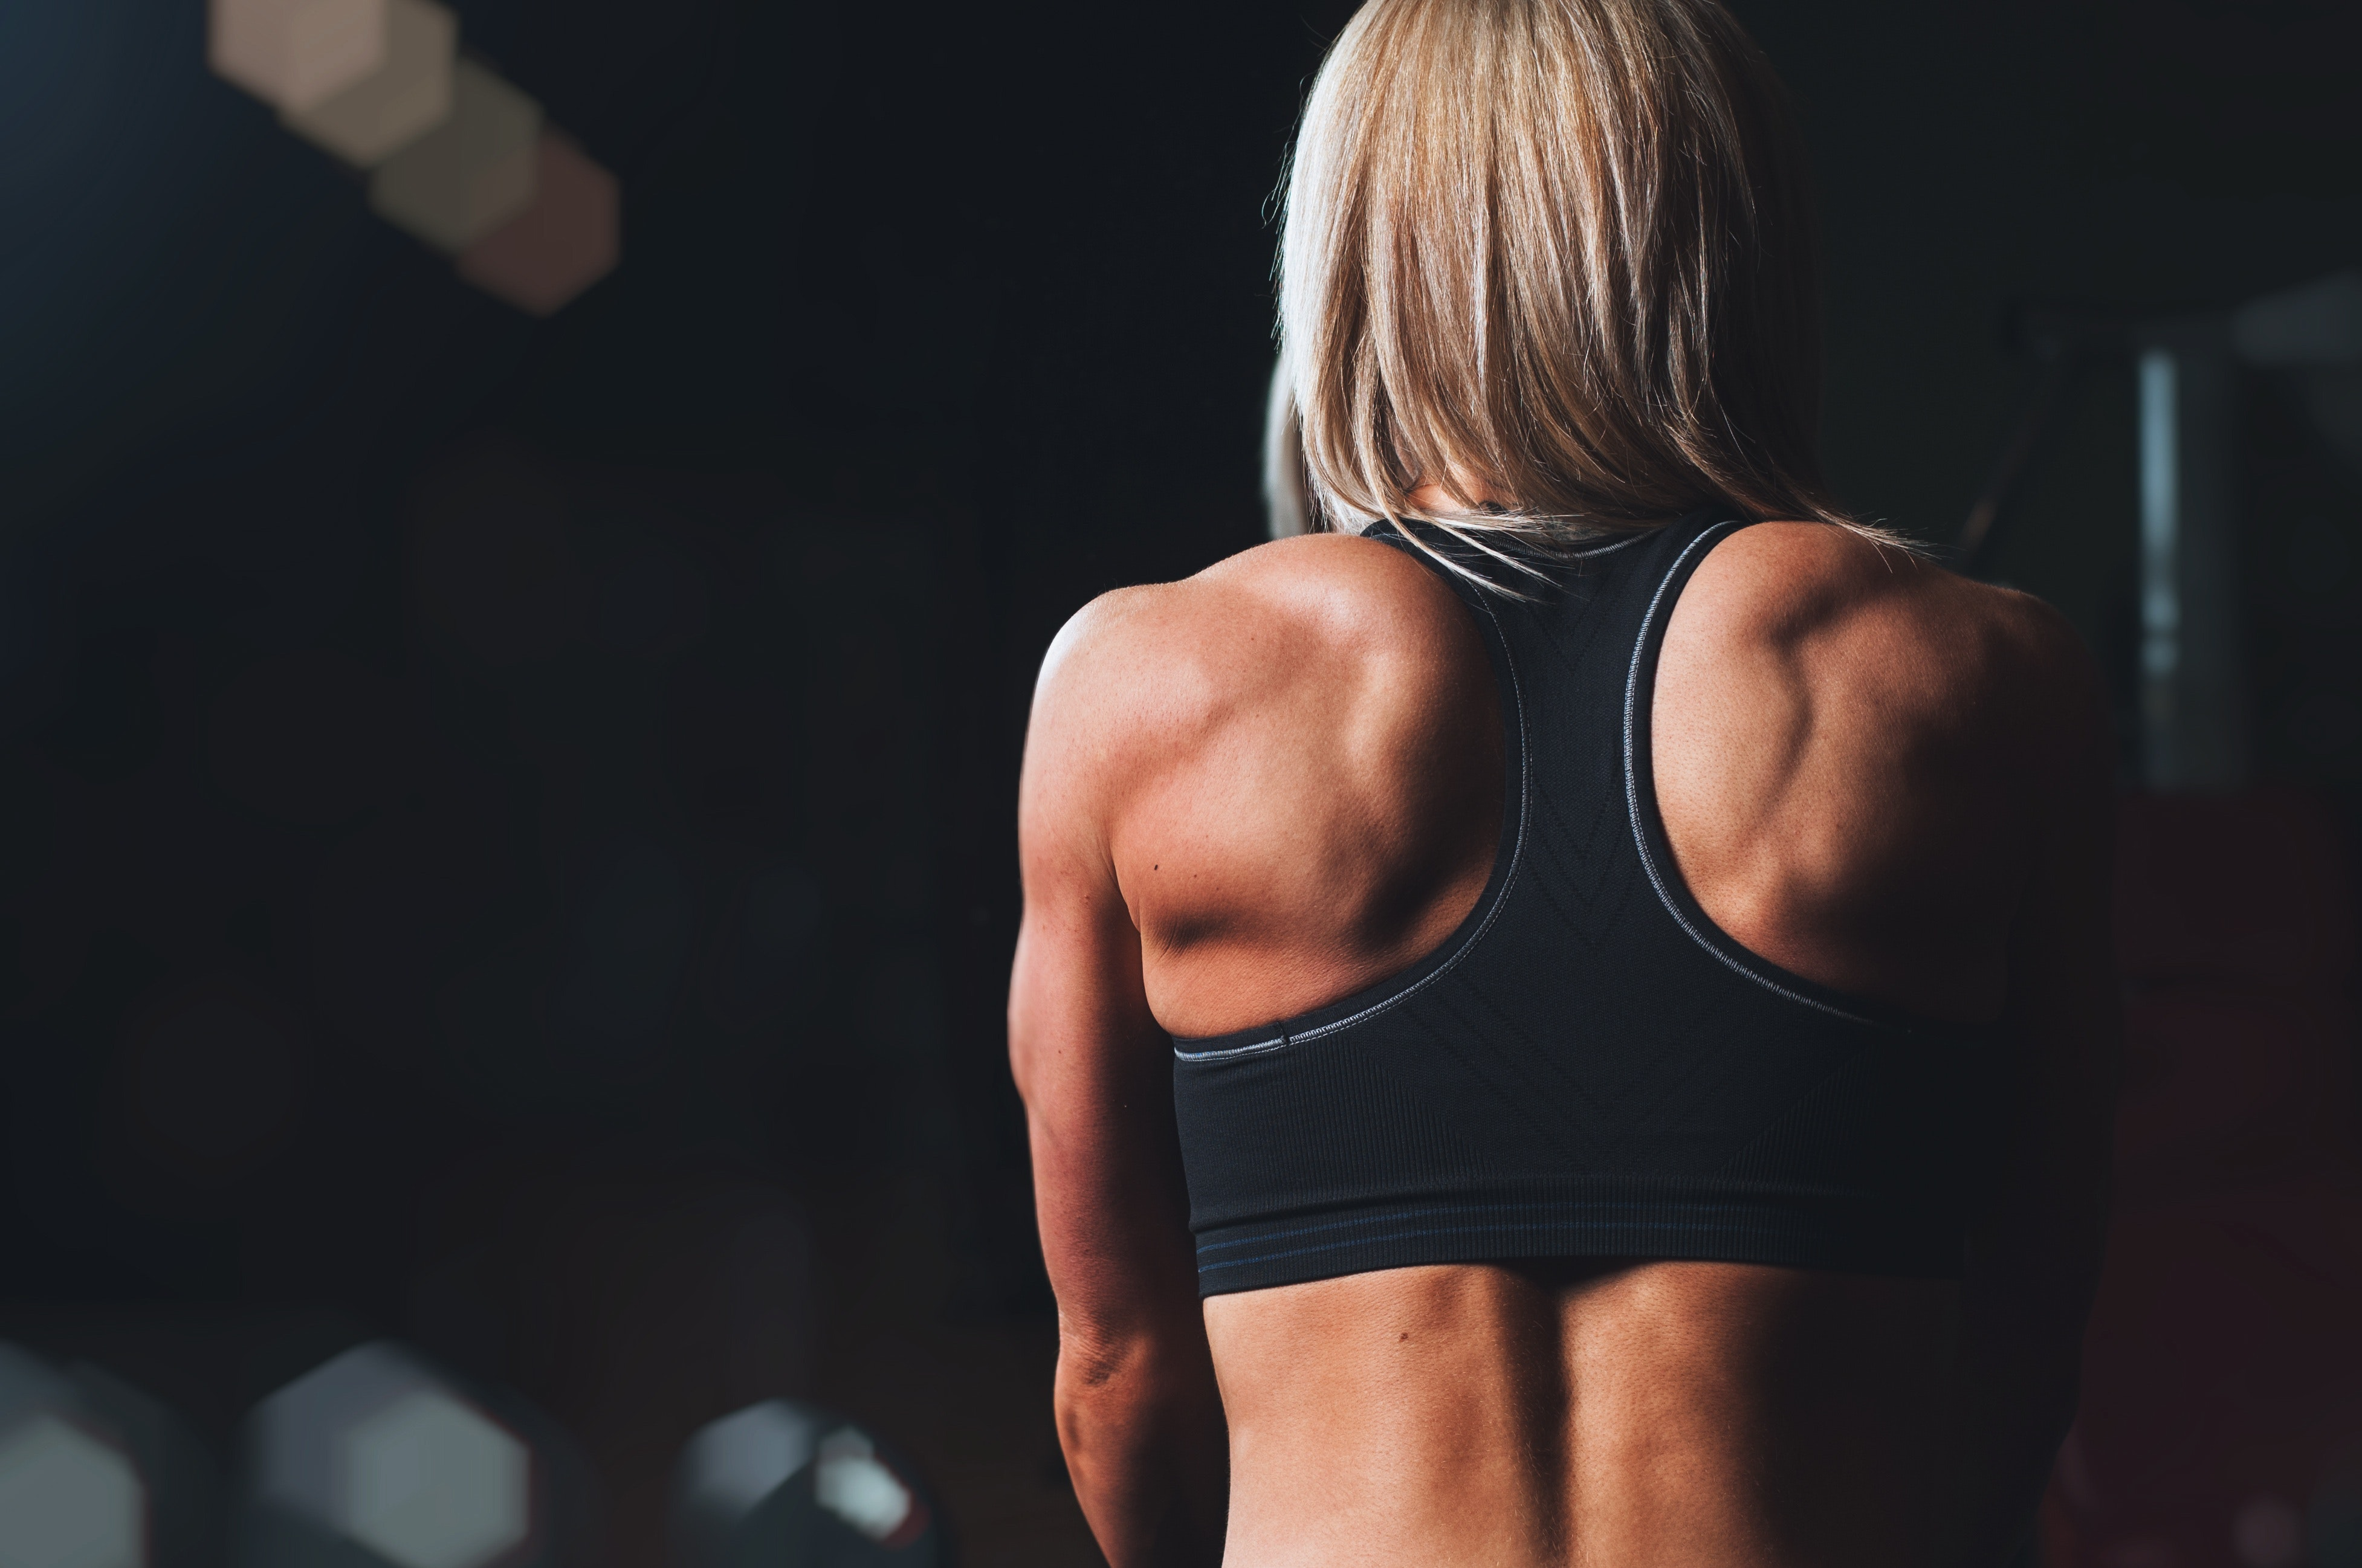 Woman's muscular back doing arm exercises